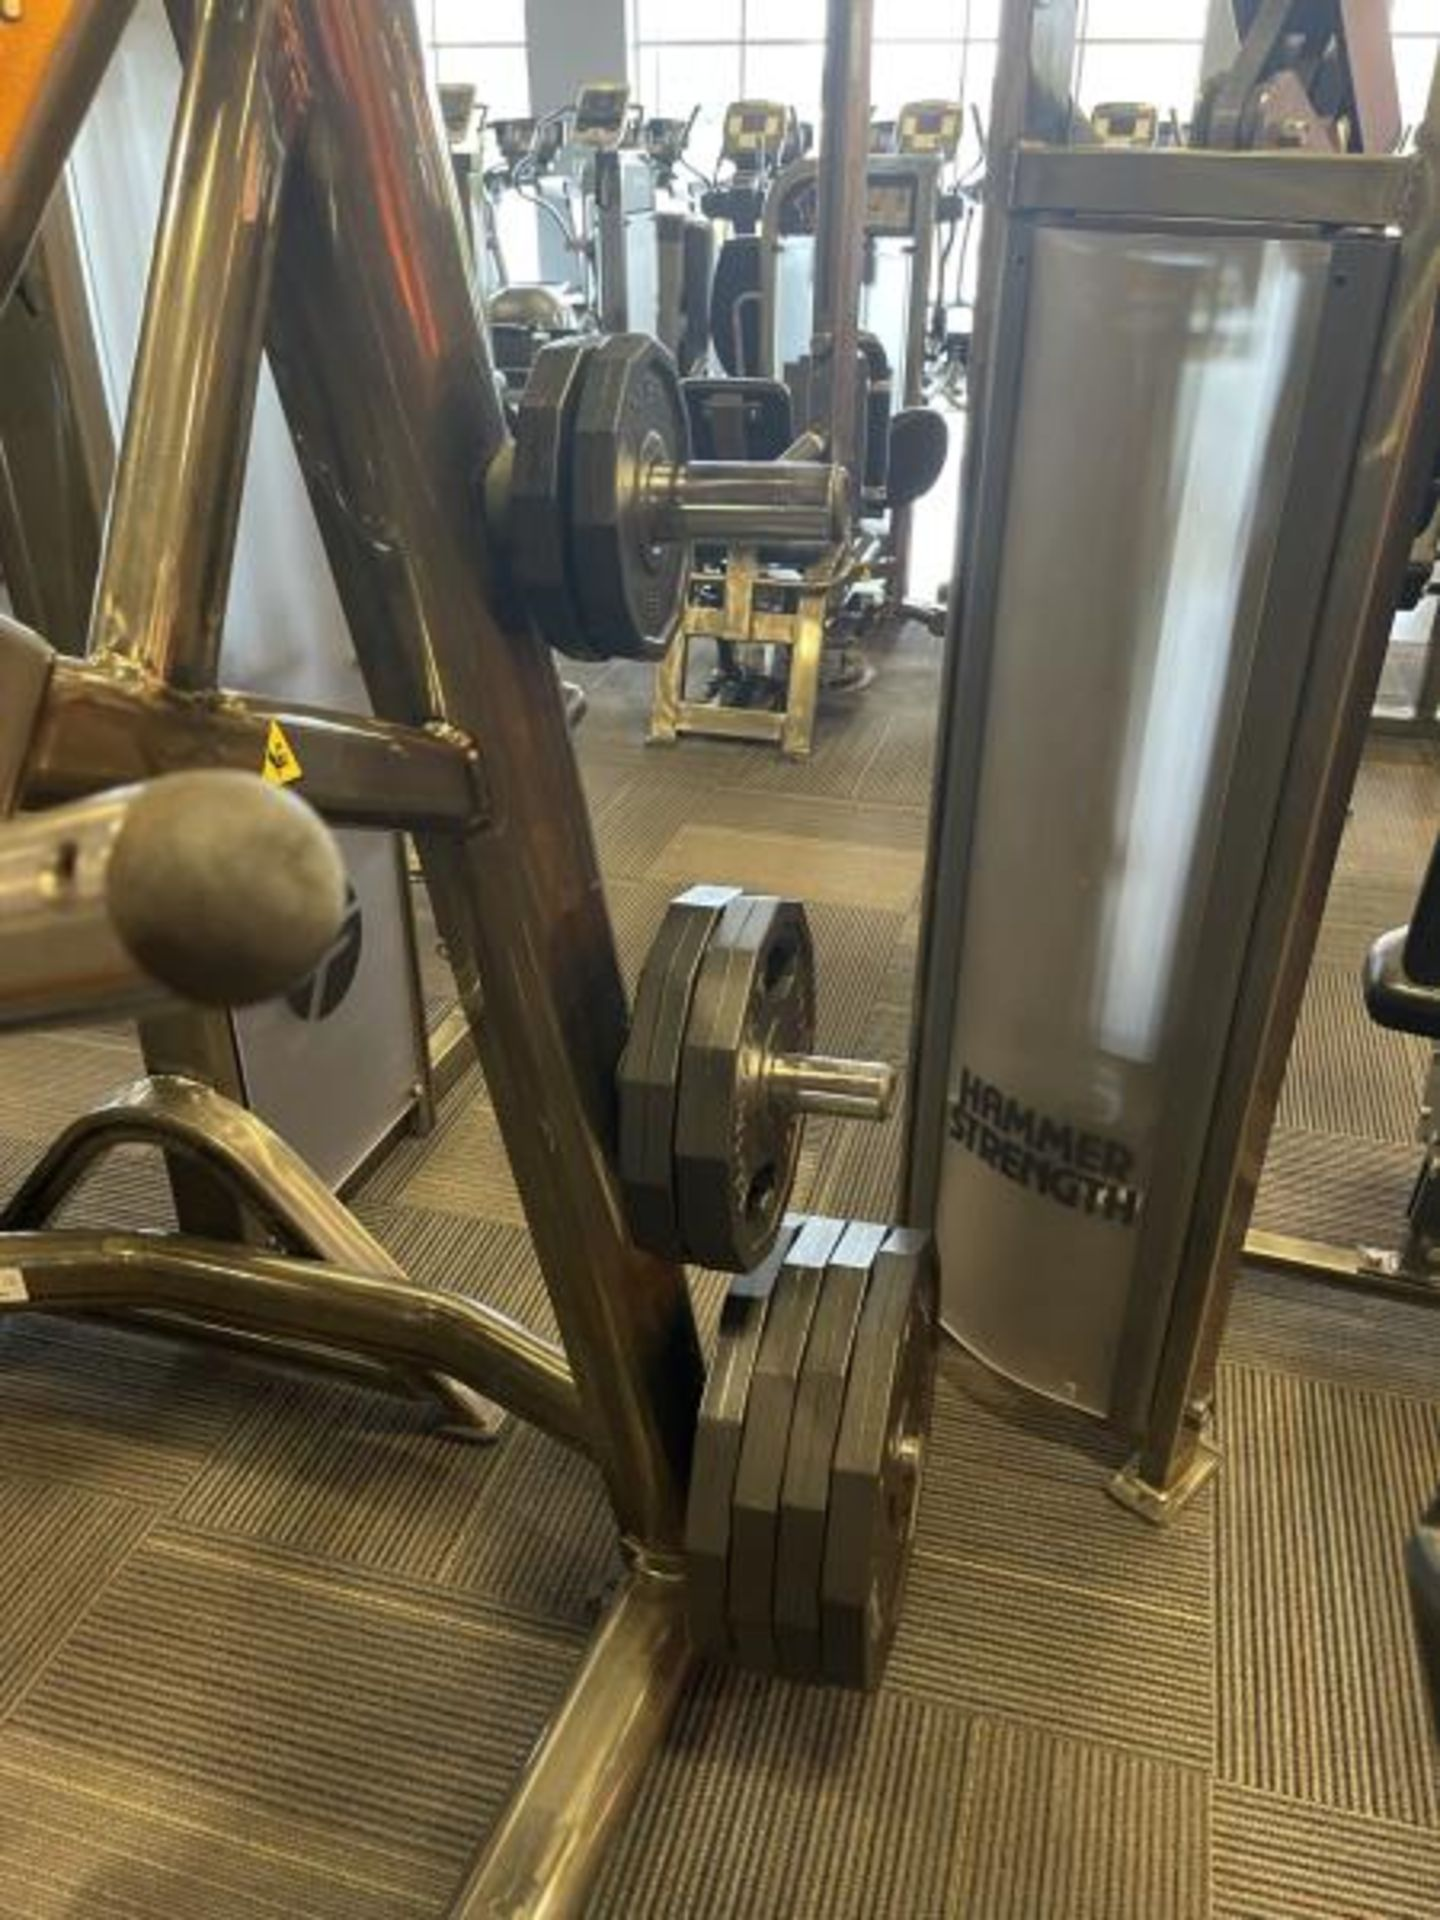 Incline Press with Iron Grip Weight Plates M: SPLIP - Image 4 of 6